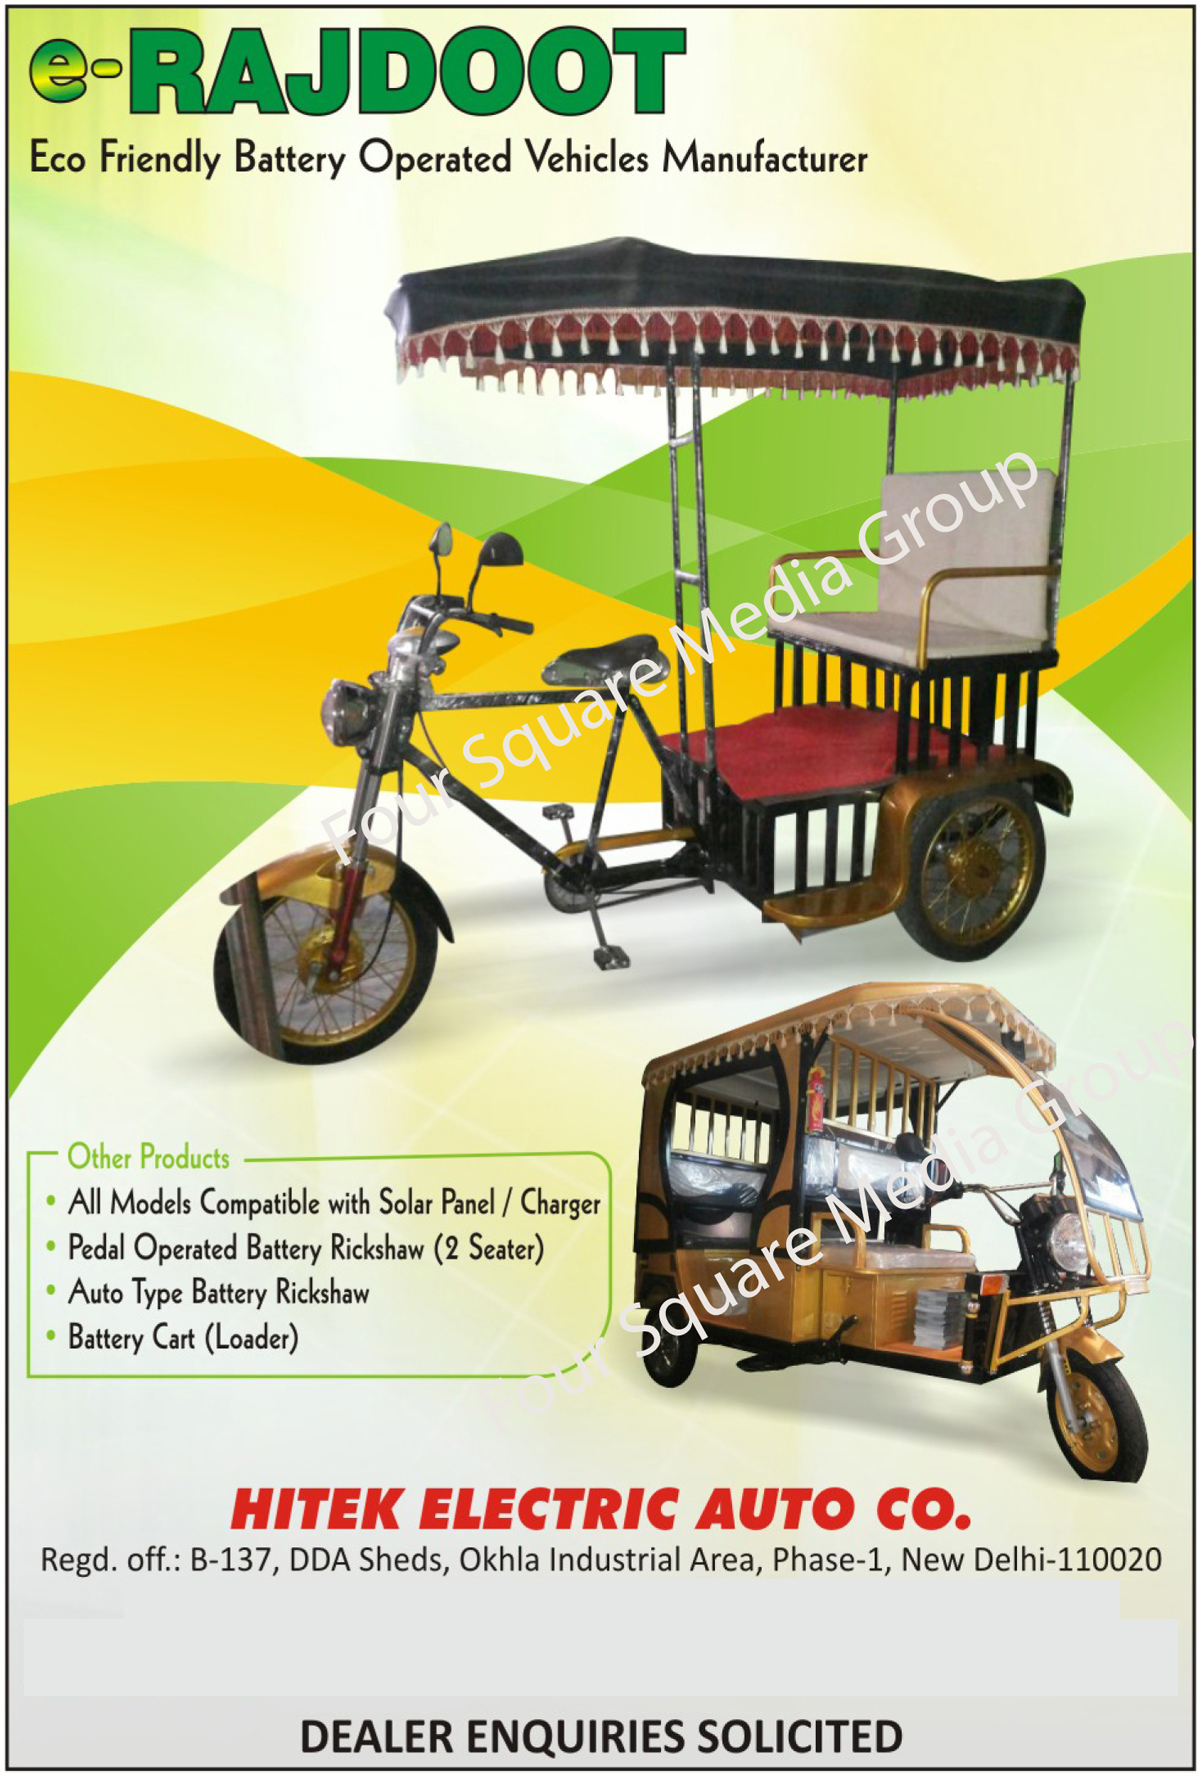 Eco Friendly Battery Operated Vehicles Pedal Operated